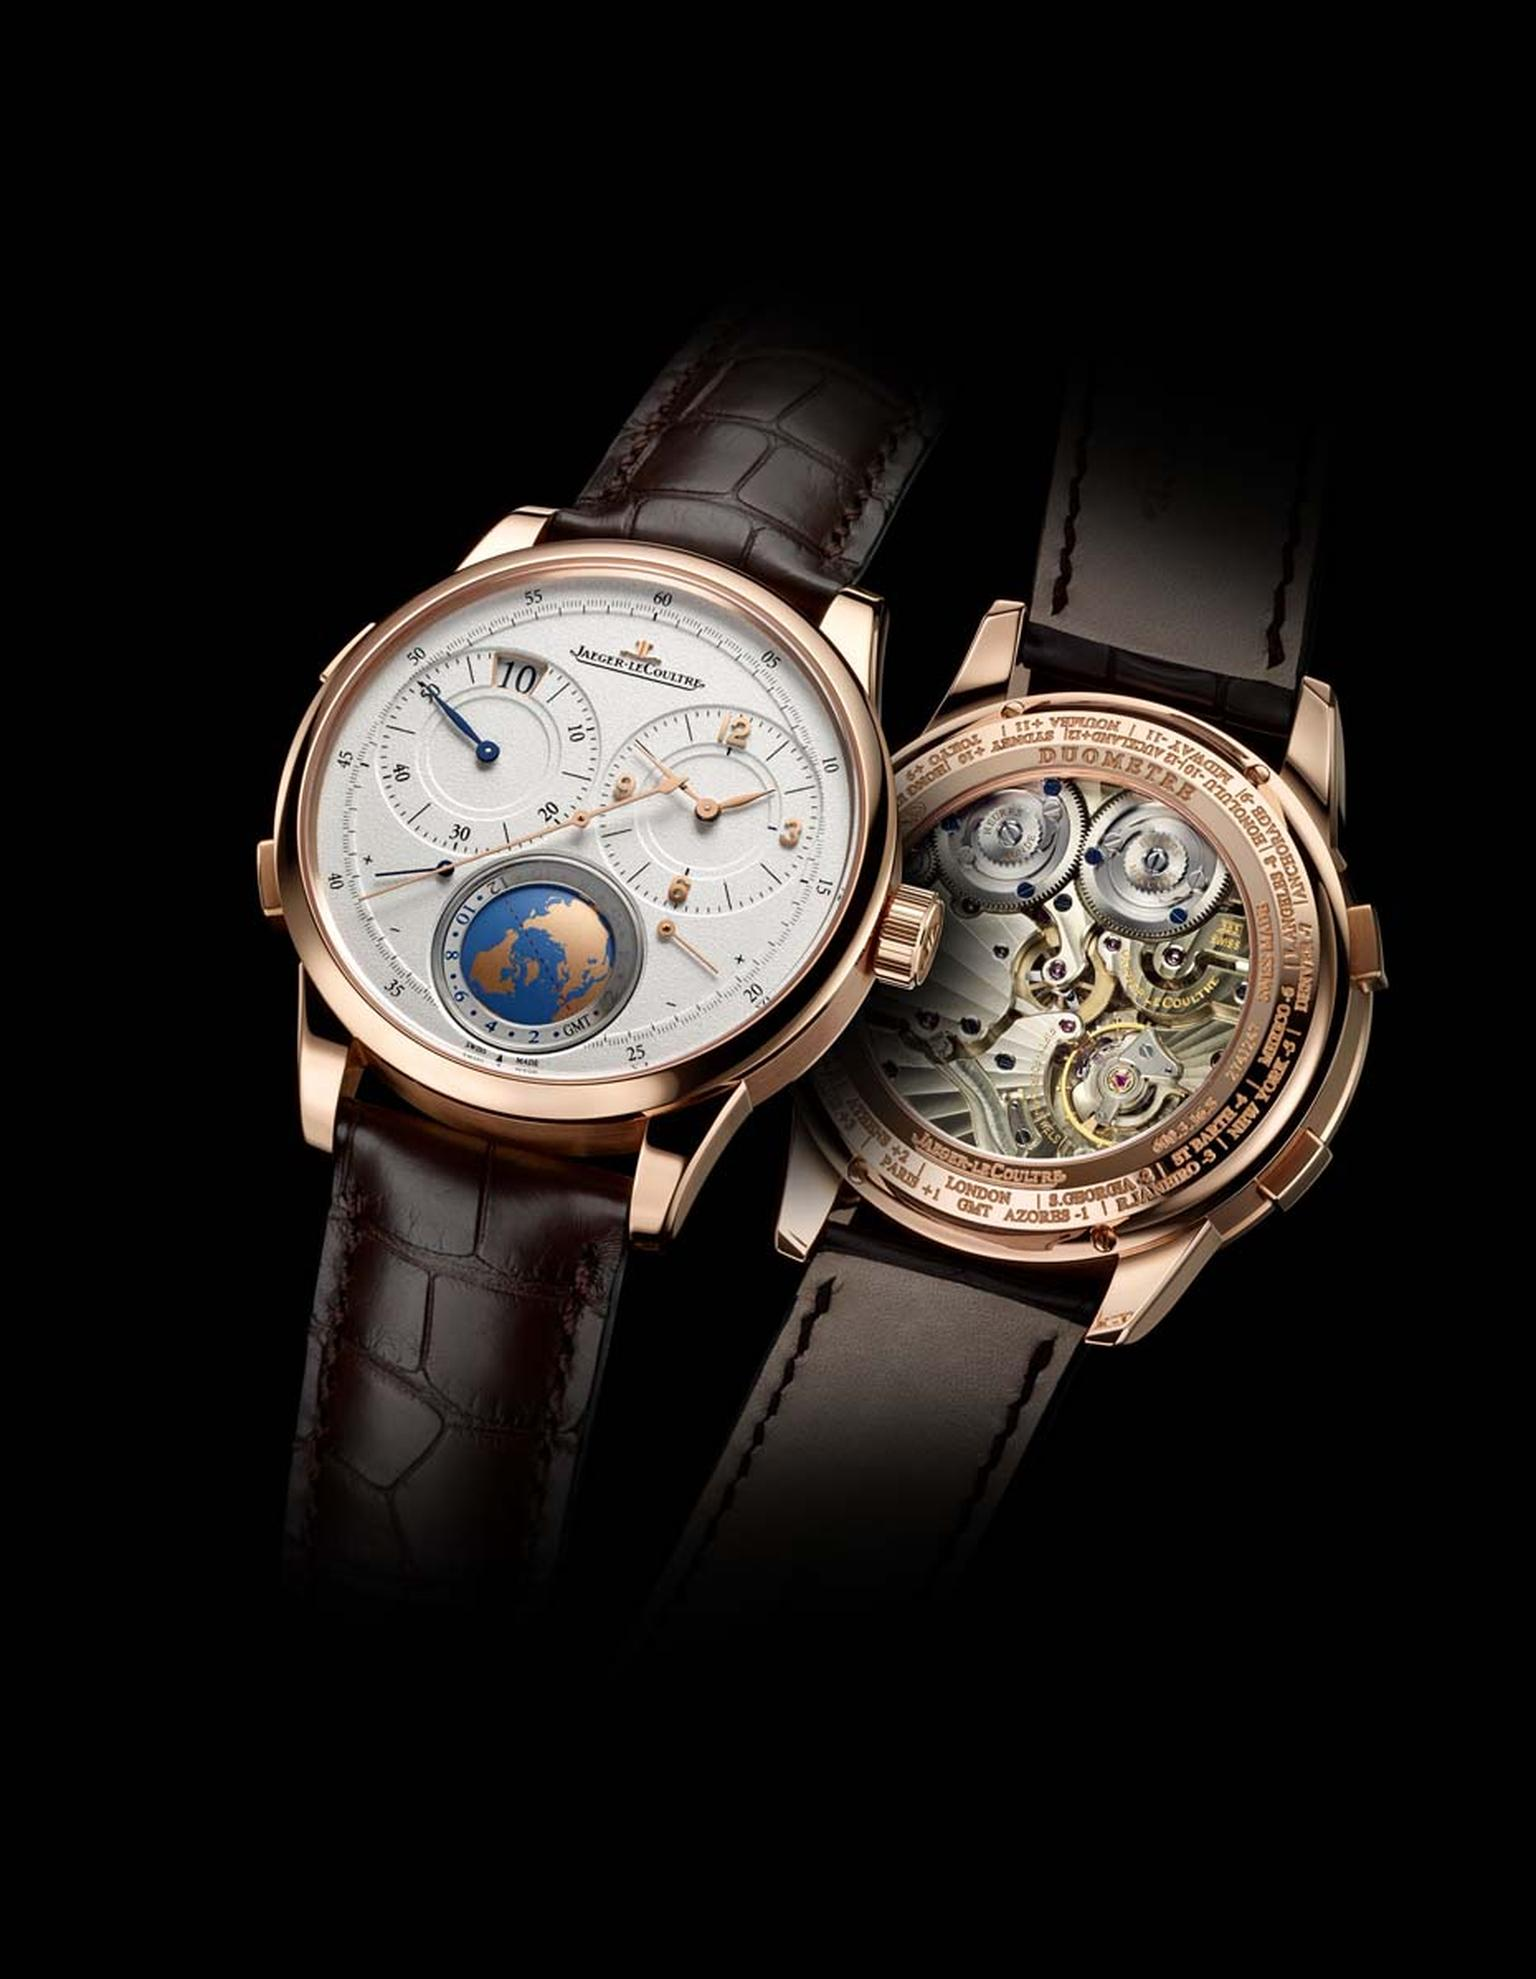 Jaeger-LeCoultre's new Duomètre Unique Travel Time in pink gold is the first world time watch that allows to-the-minute adjustment of the second time zone.